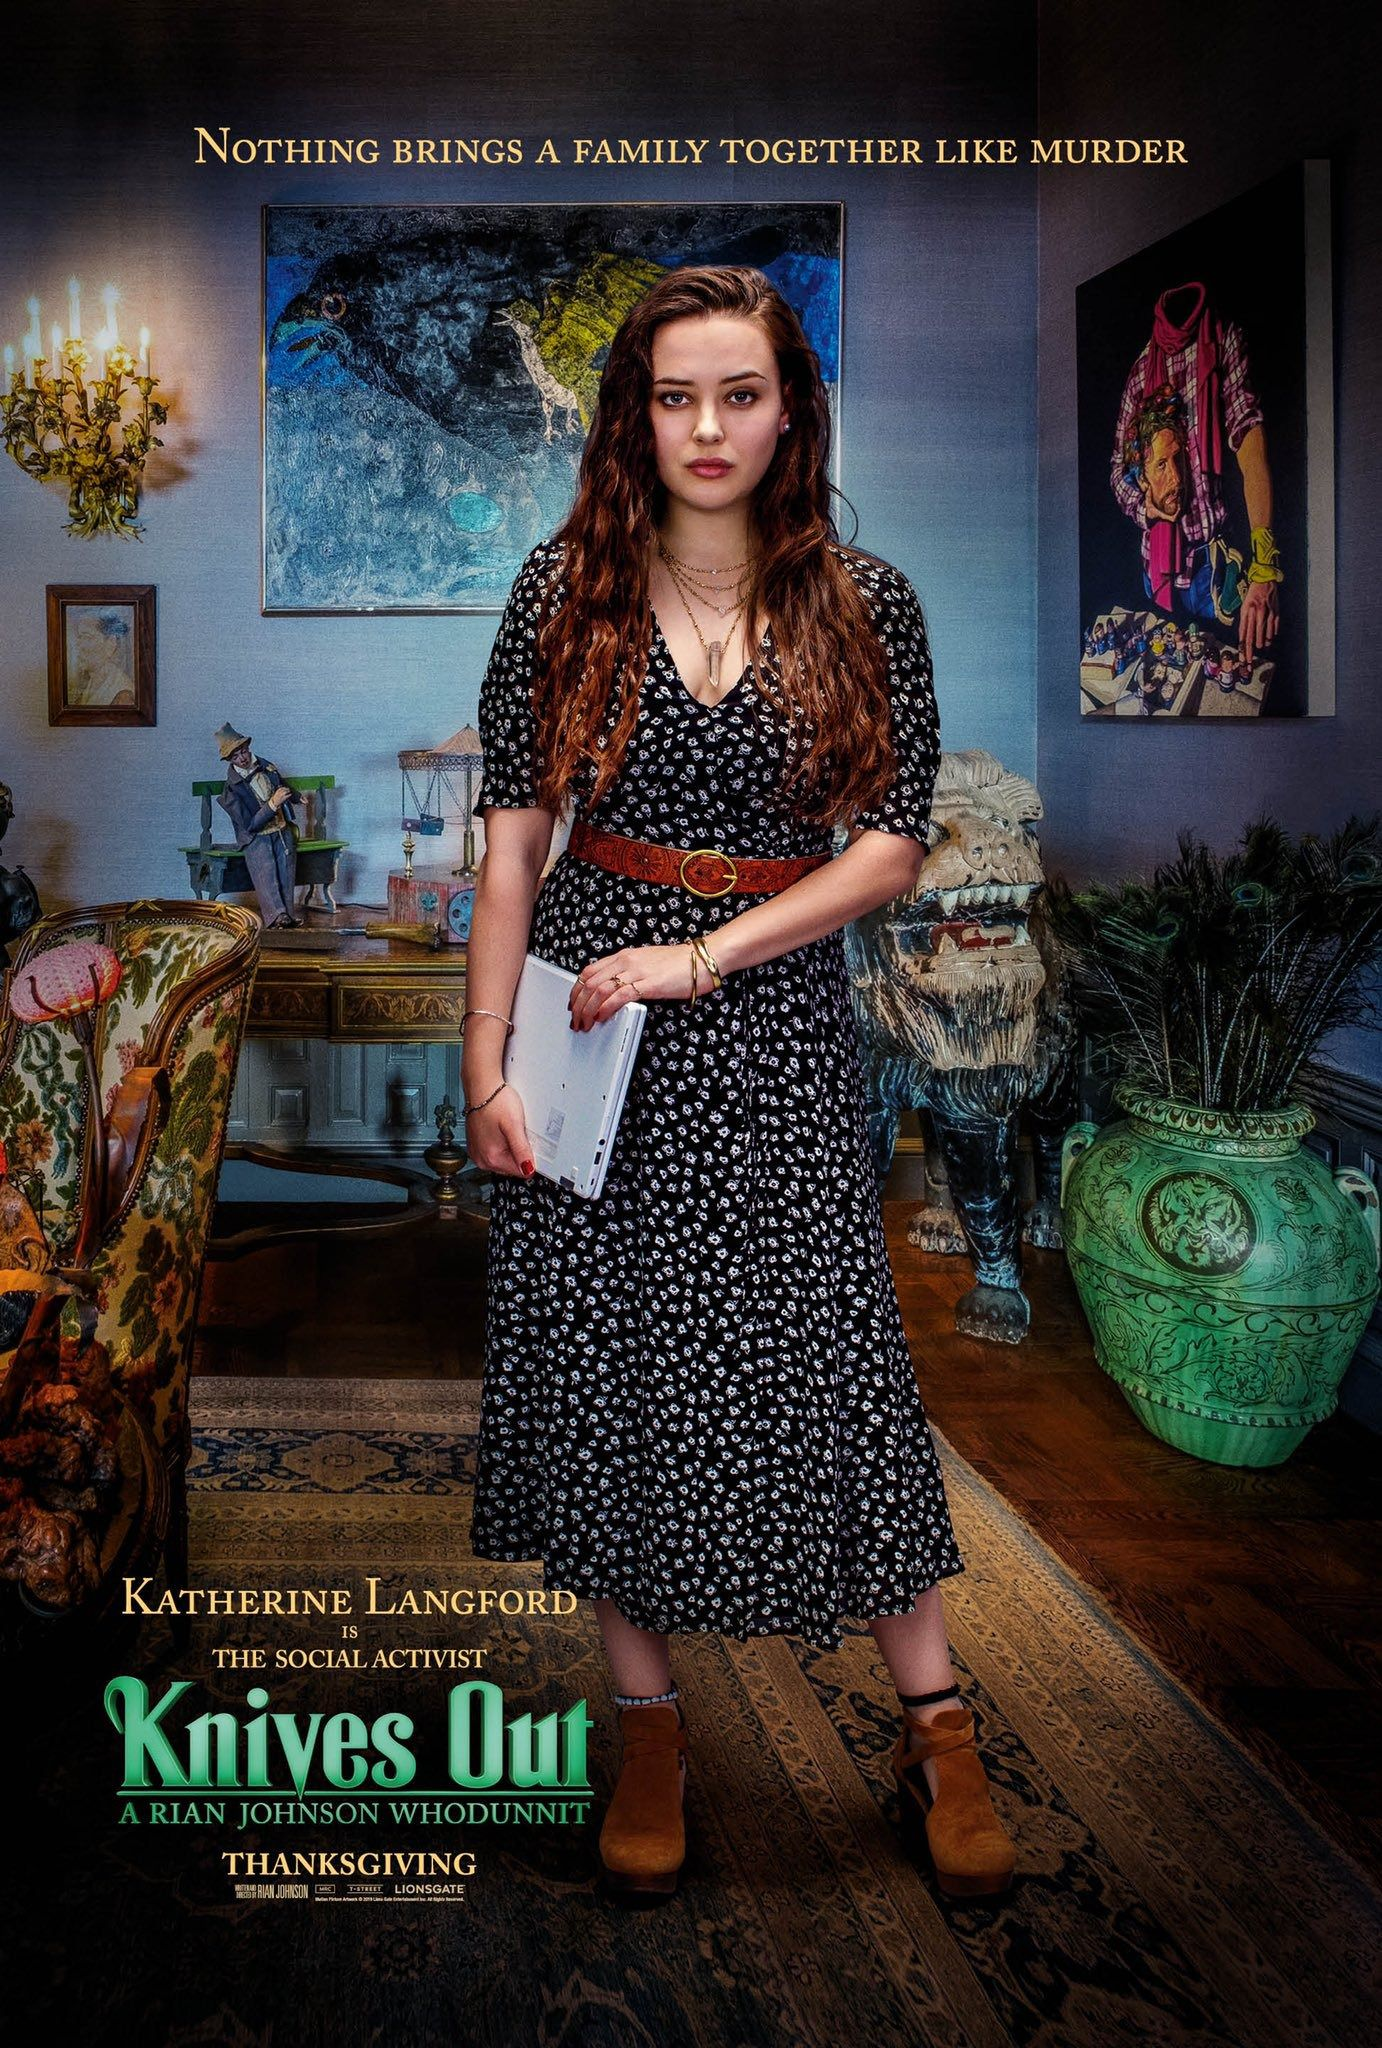 Katherine Langford is the Social Activist